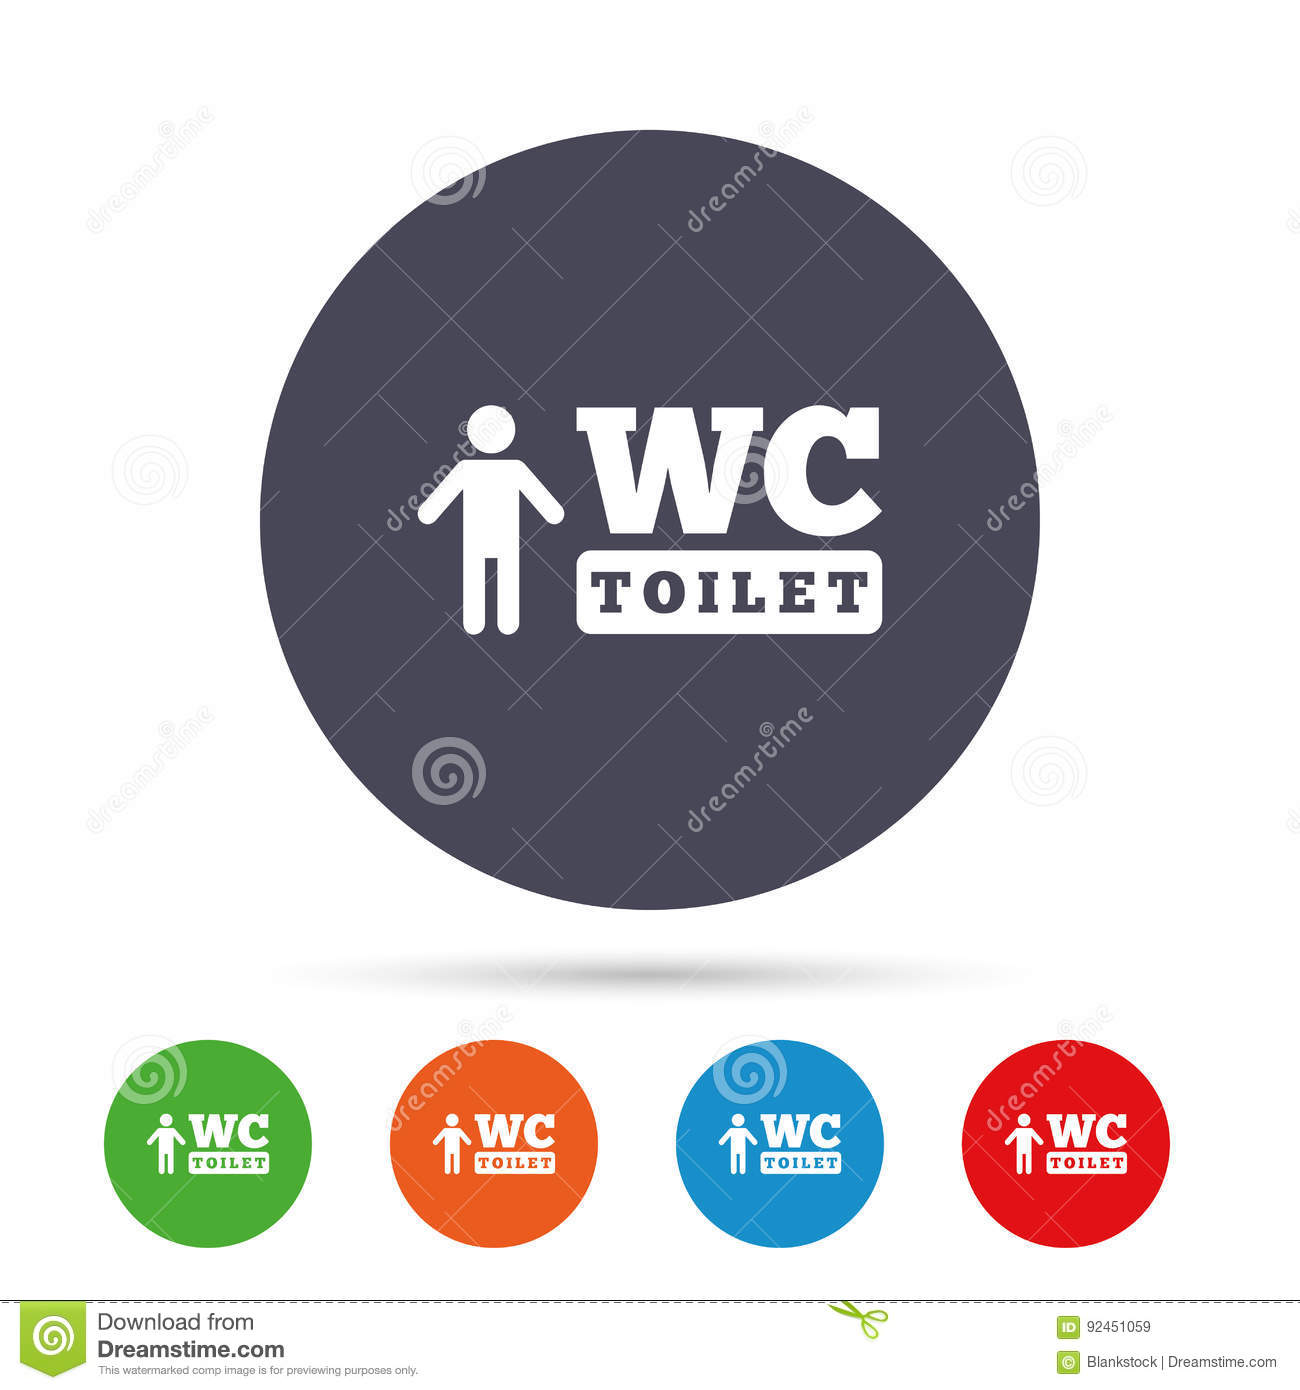 Wc men toilet sign icon restroom symbol stock vector wc men toilet sign icon restroom symbol biocorpaavc Choice Image